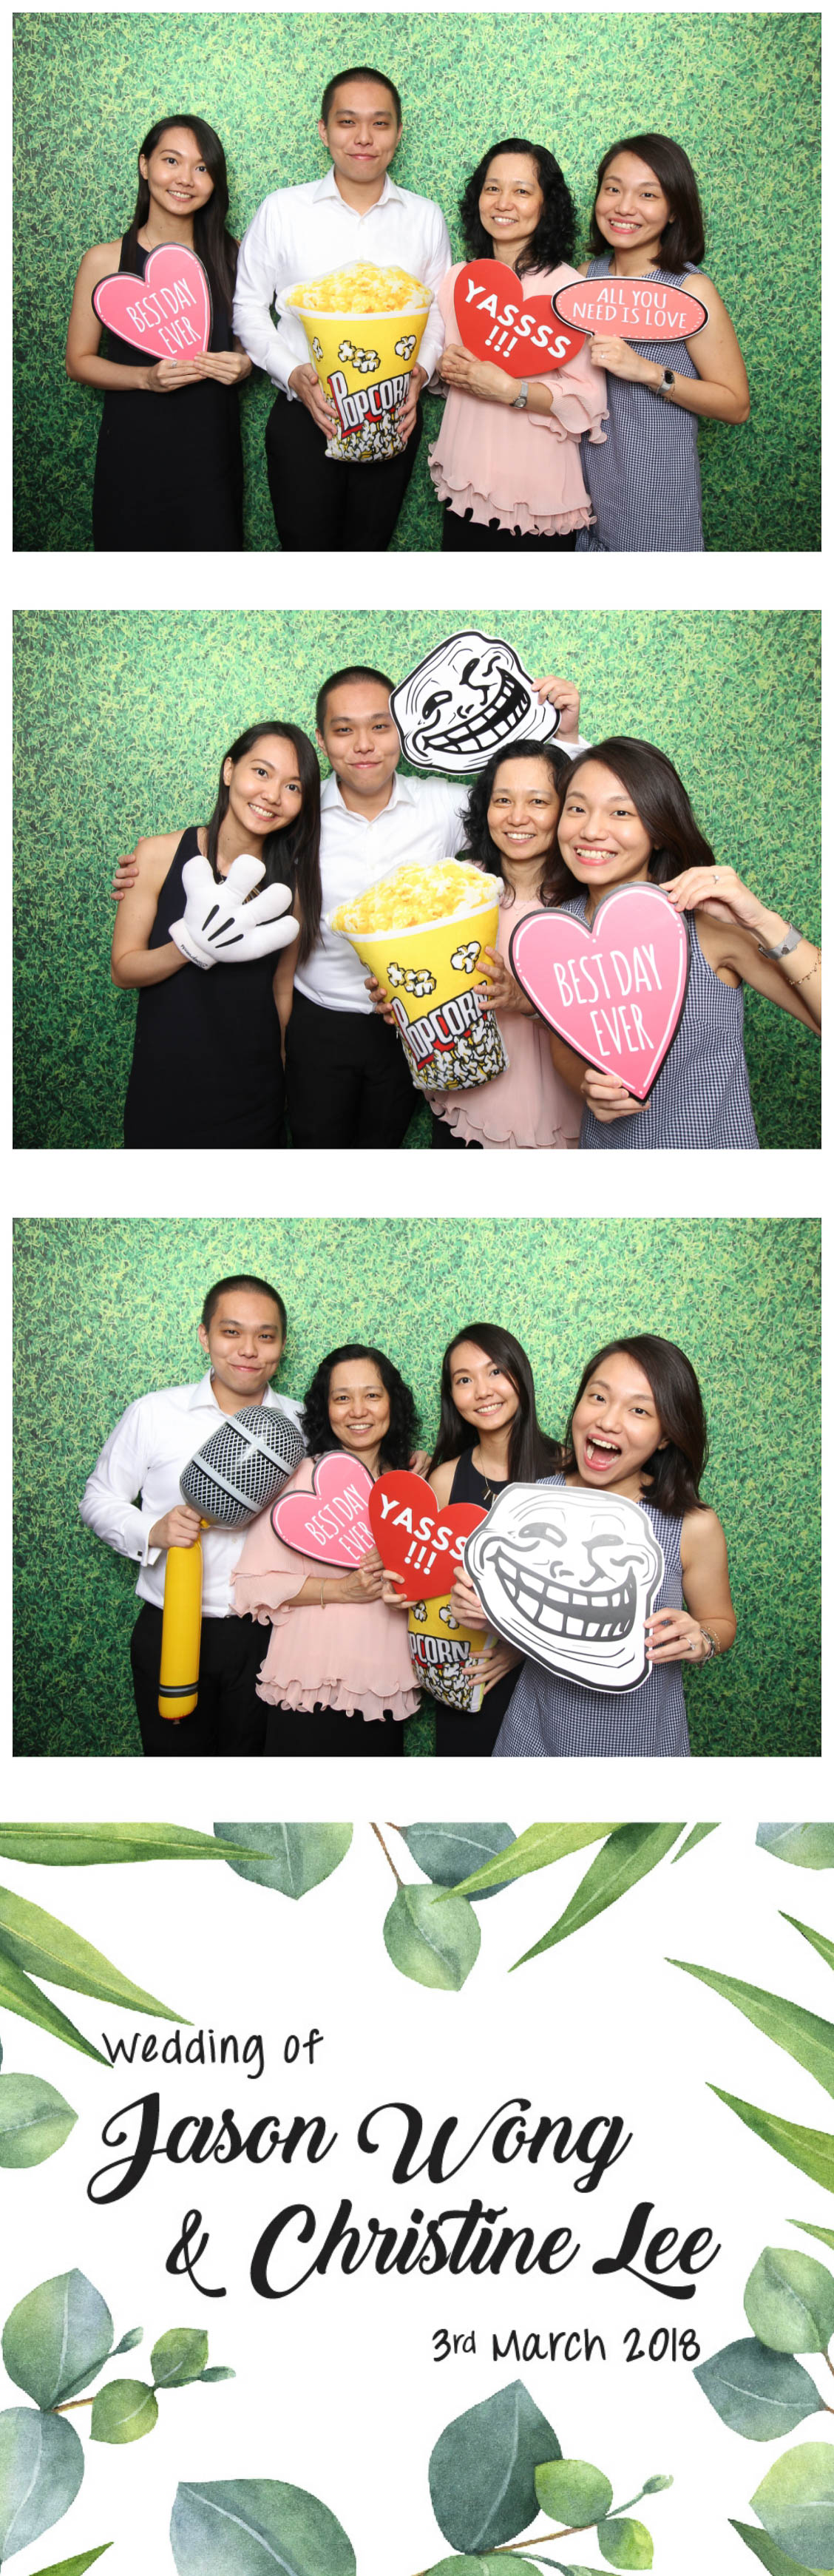 Photobooth 0302-35